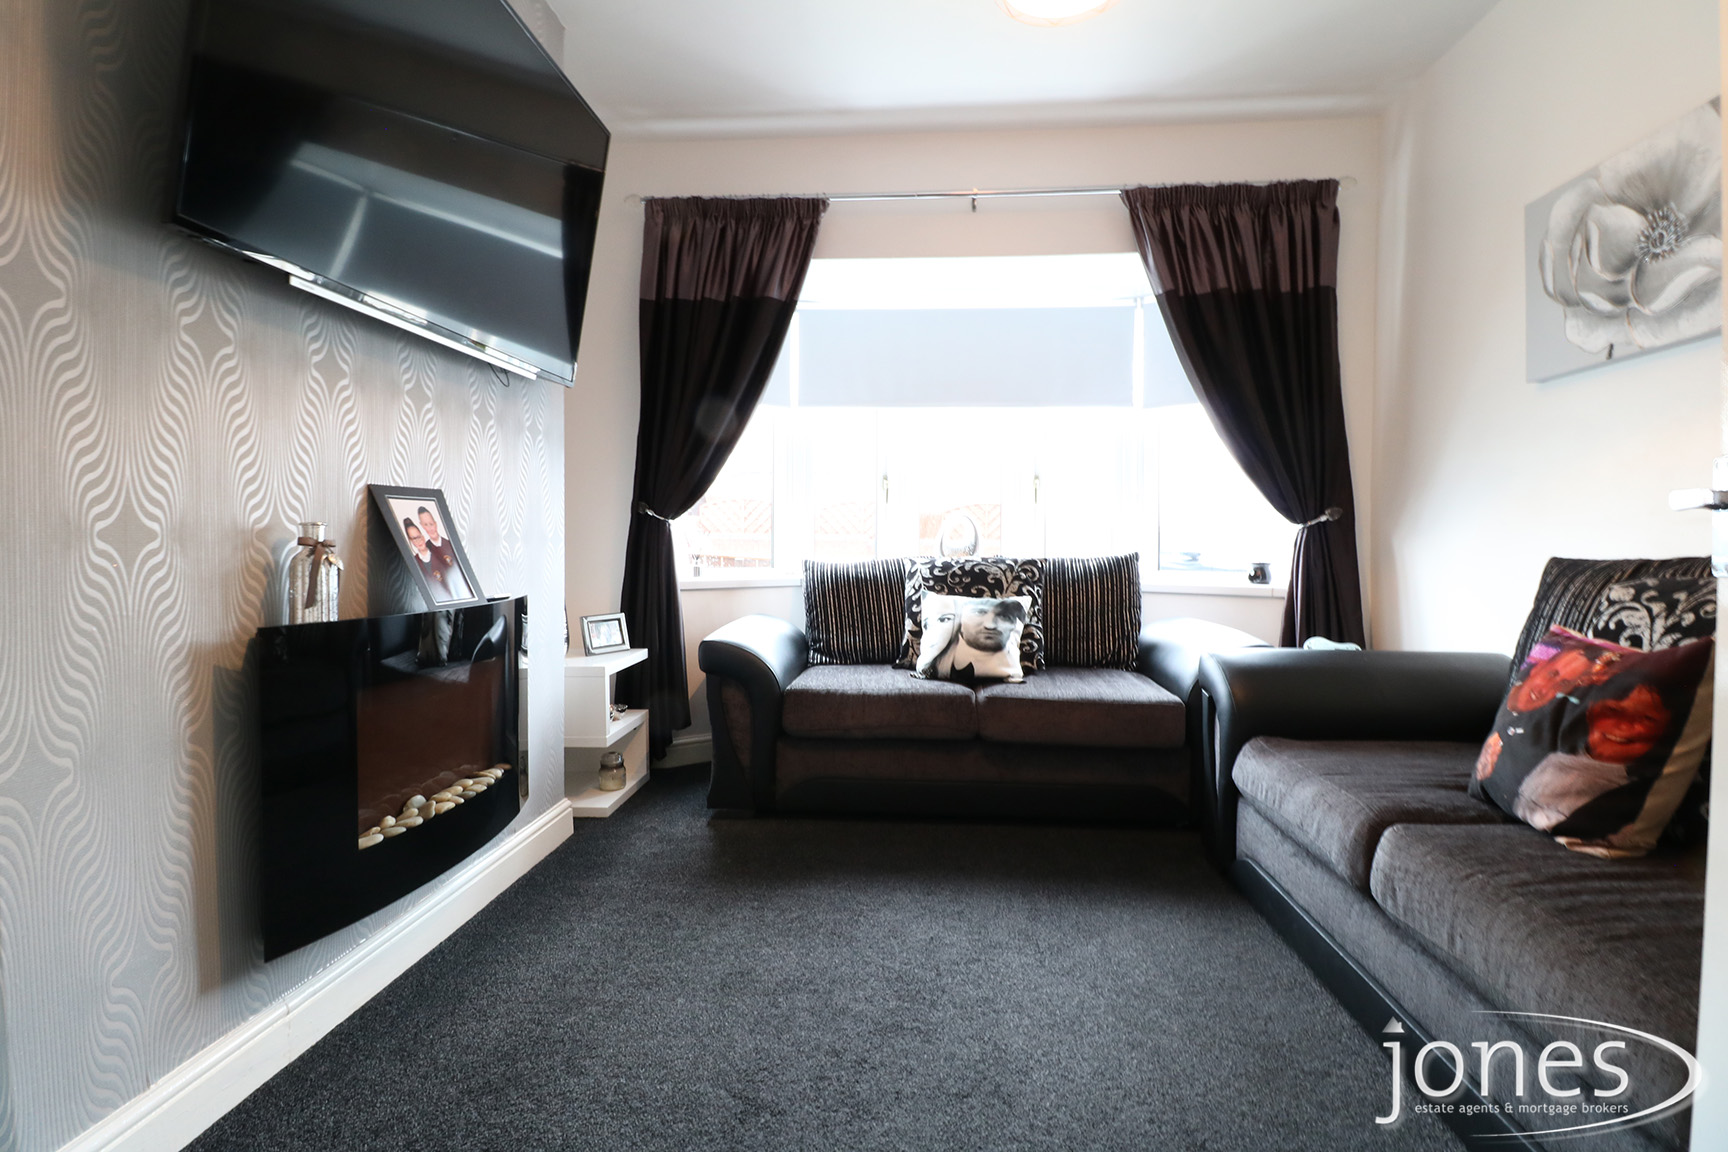 Home for Sale Let - Photo 02 Grange Avenue, Billingham, TS23 1JH